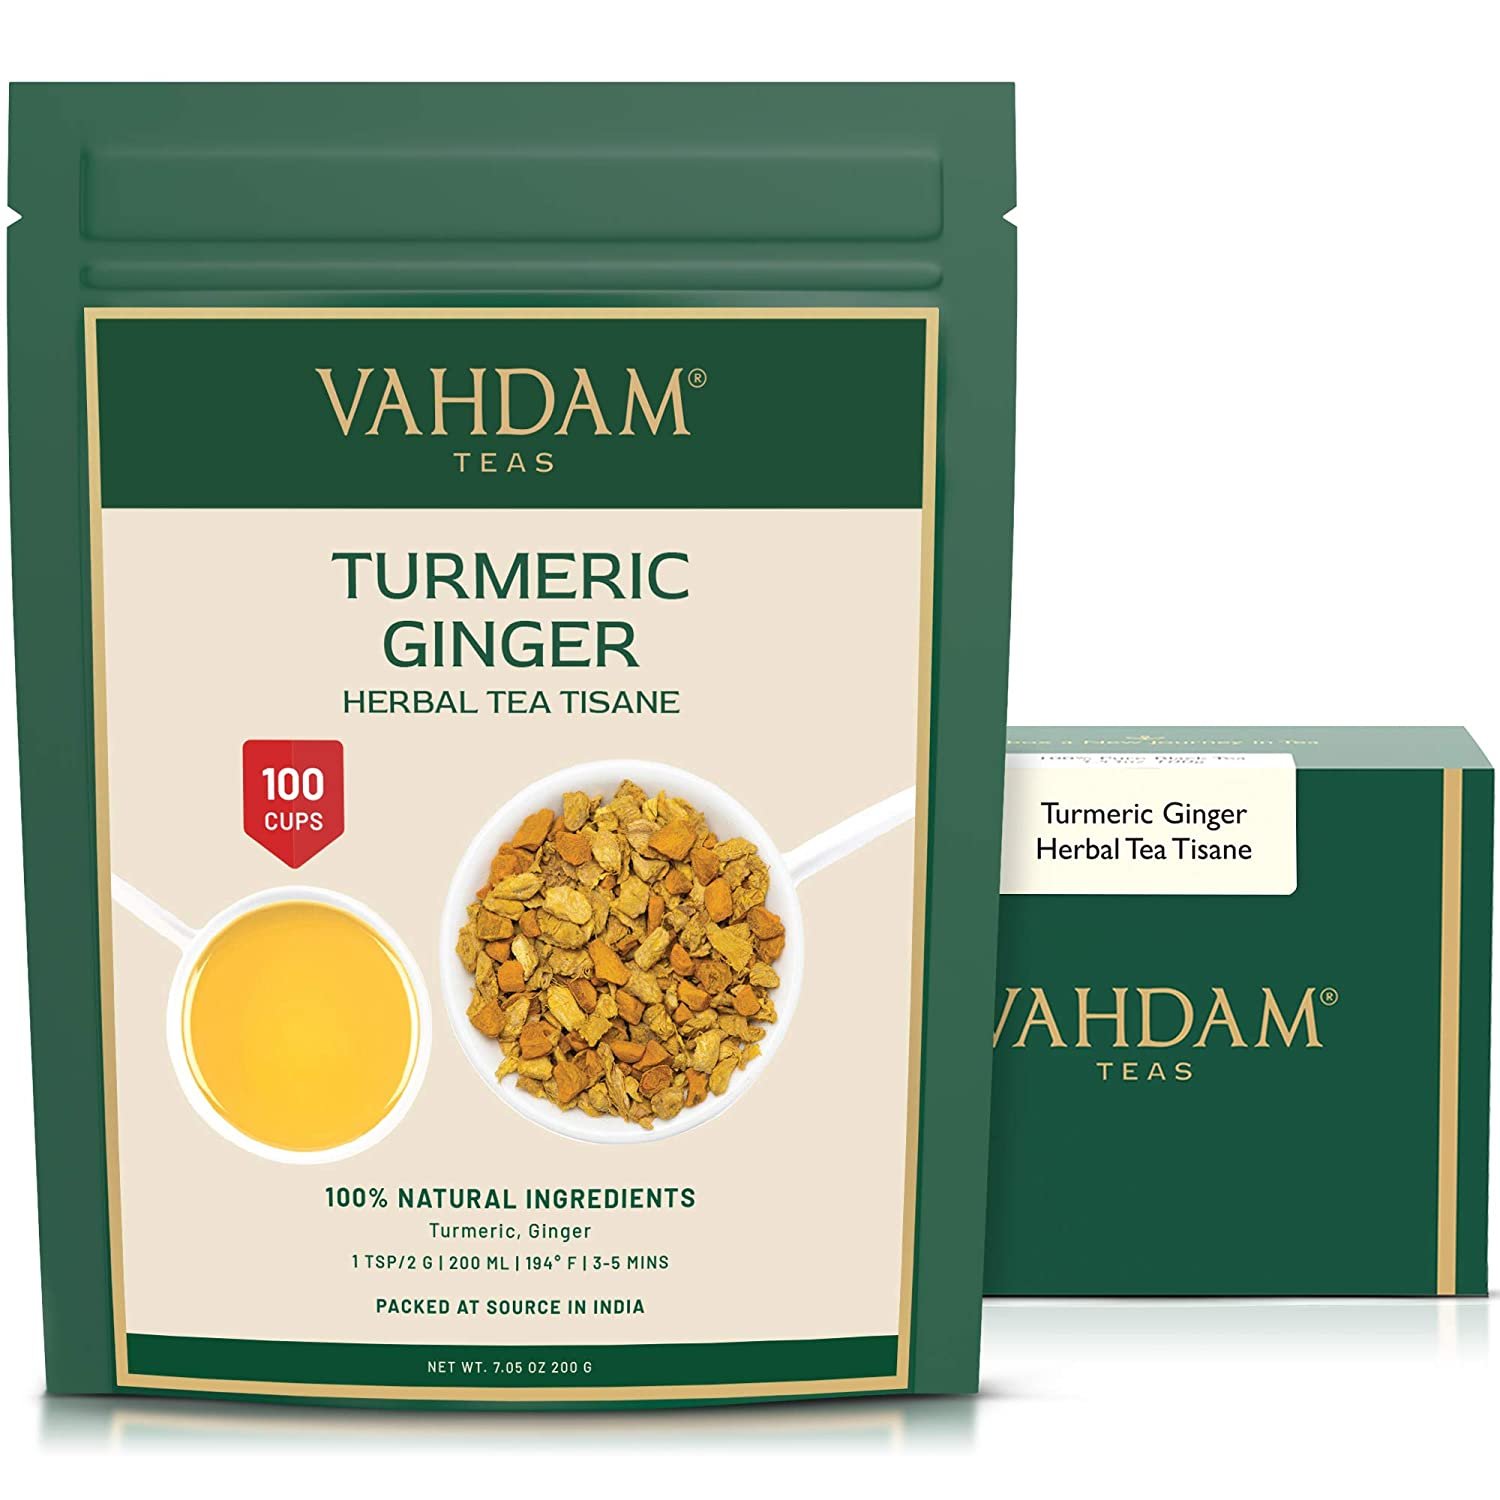 VAHDAM, Turmeric + Ginger POWERFUL SUPERFOOD Blend (100+ Cups) I CAFFEINE FREE Herbal Tea | POWERFUL Wellness & Healing TURMERIC for IMMUNITY | 100% NATURAL | Try COLD BREW or Hot Tea with Milk